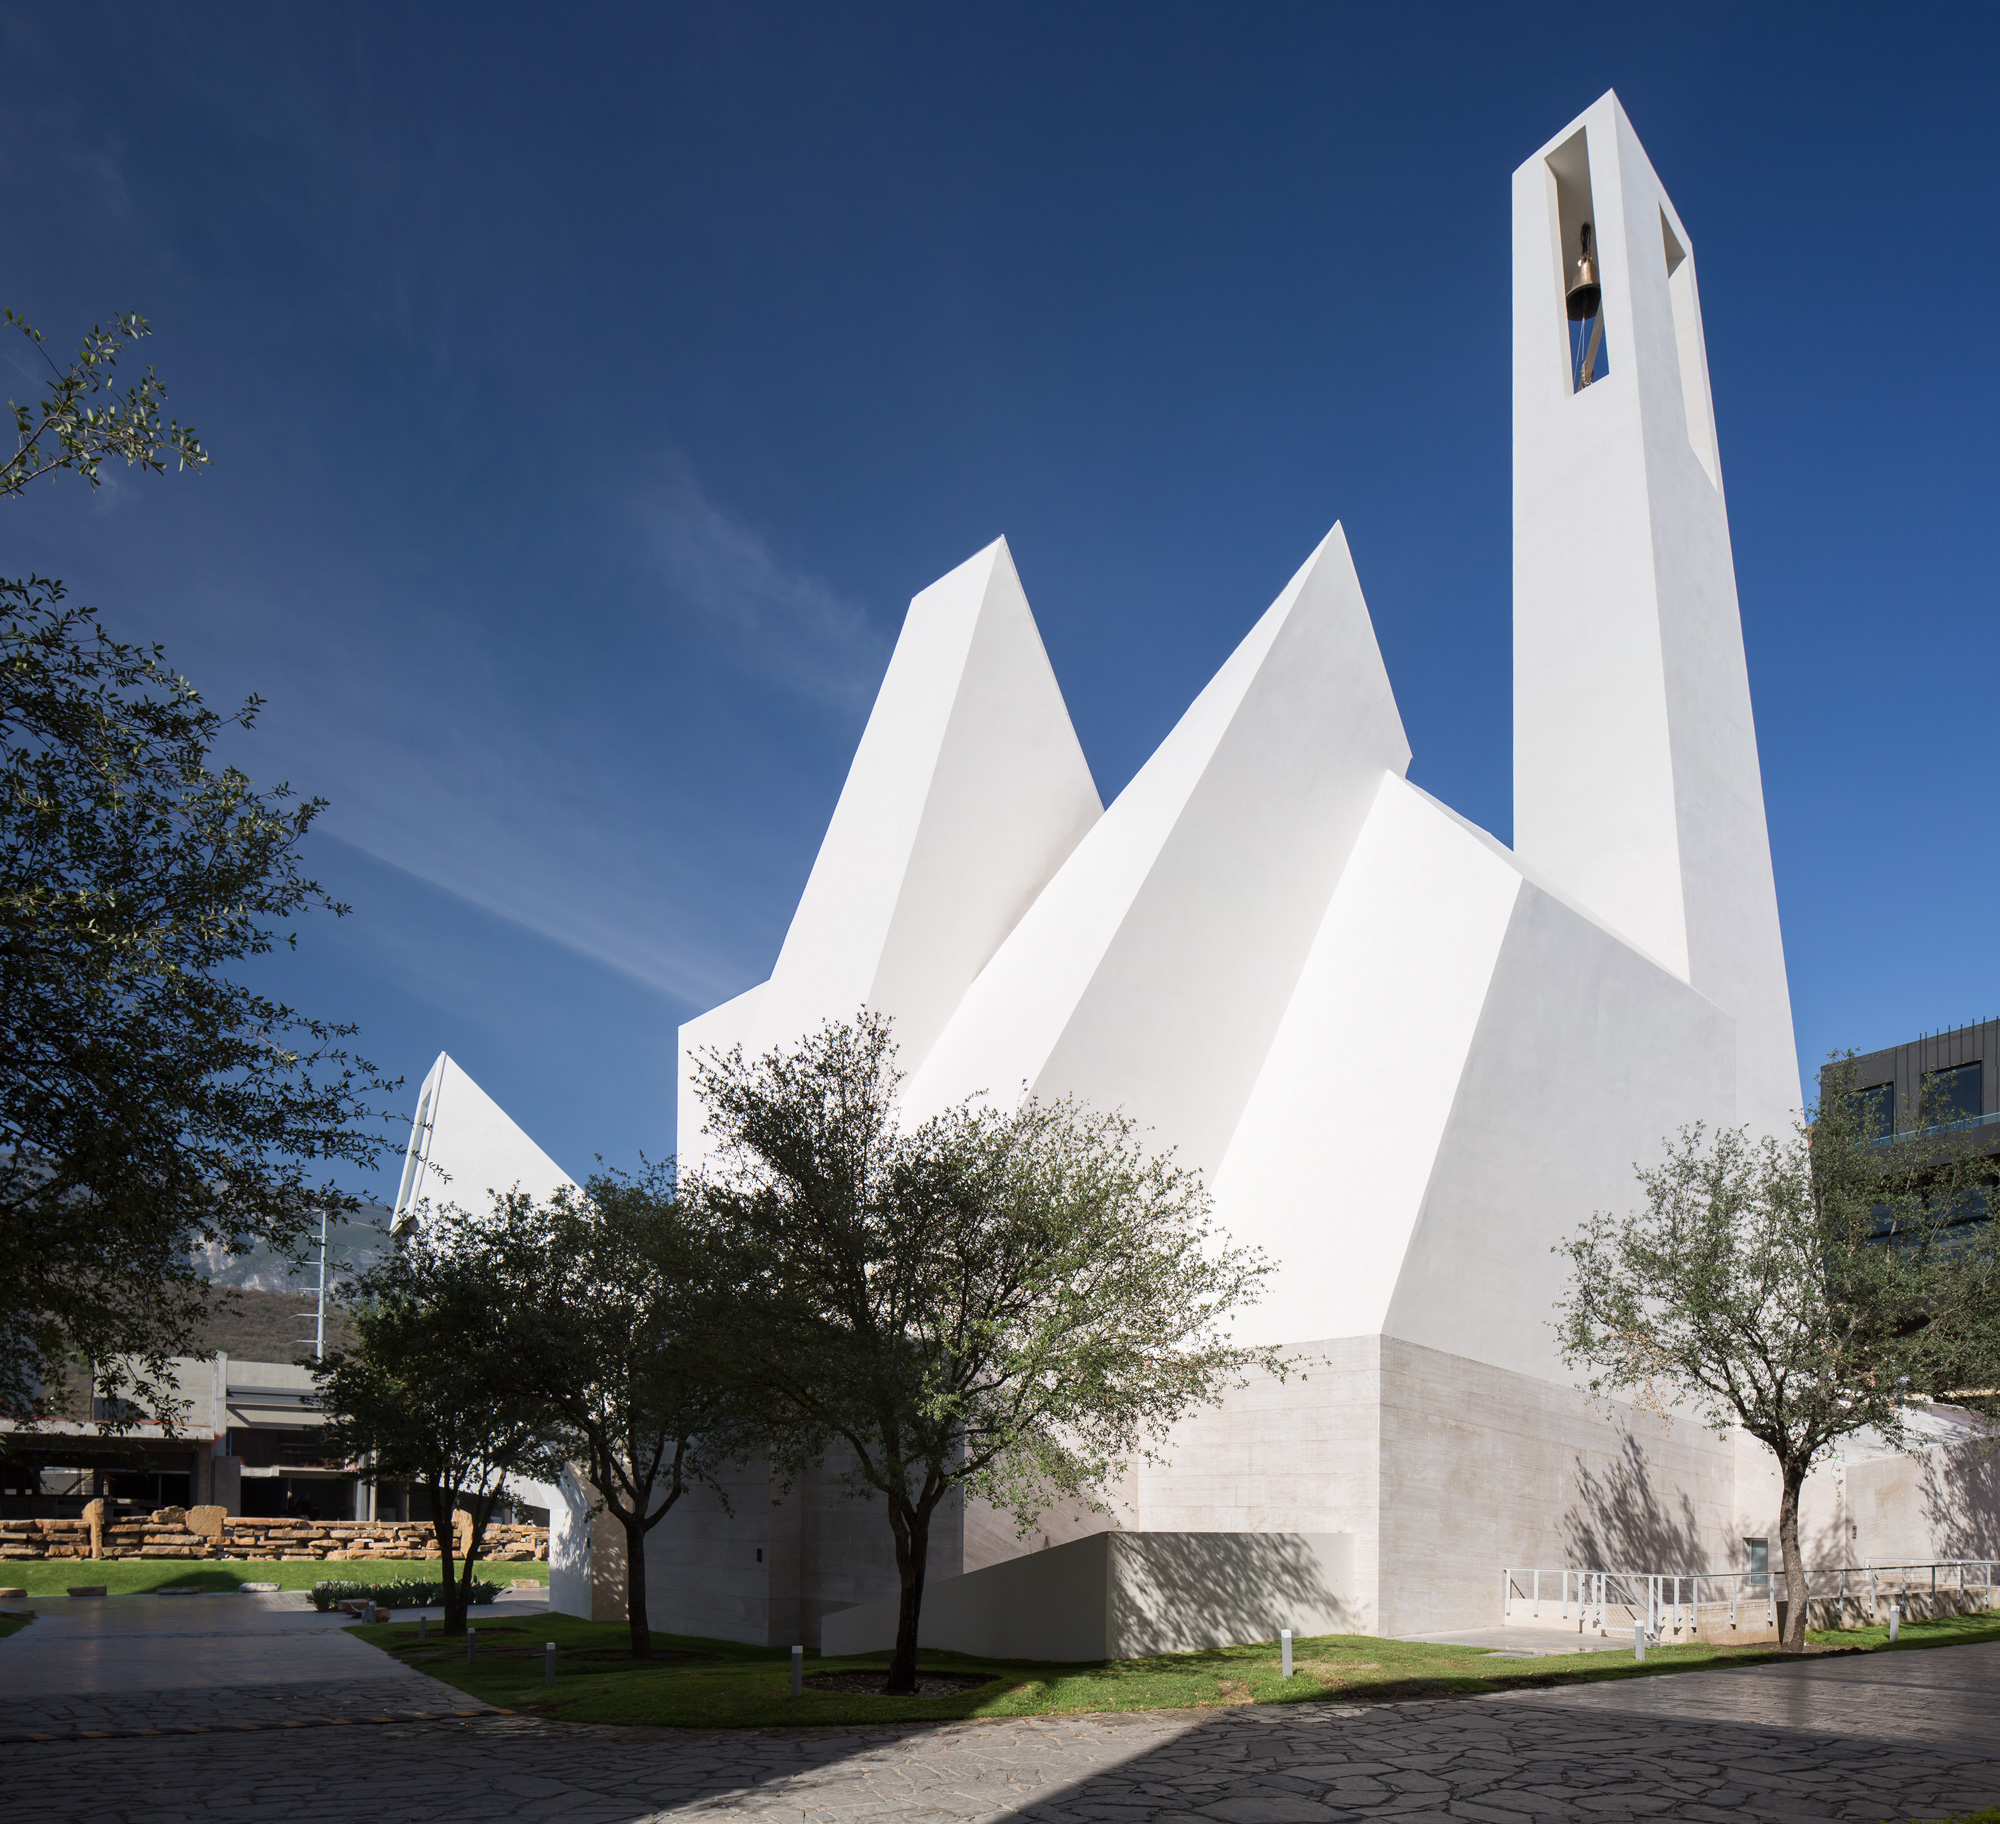 Parish Church El Senor De La Misericordia, Moneo Brock - Jeffrey Brock © Jorge Taboada